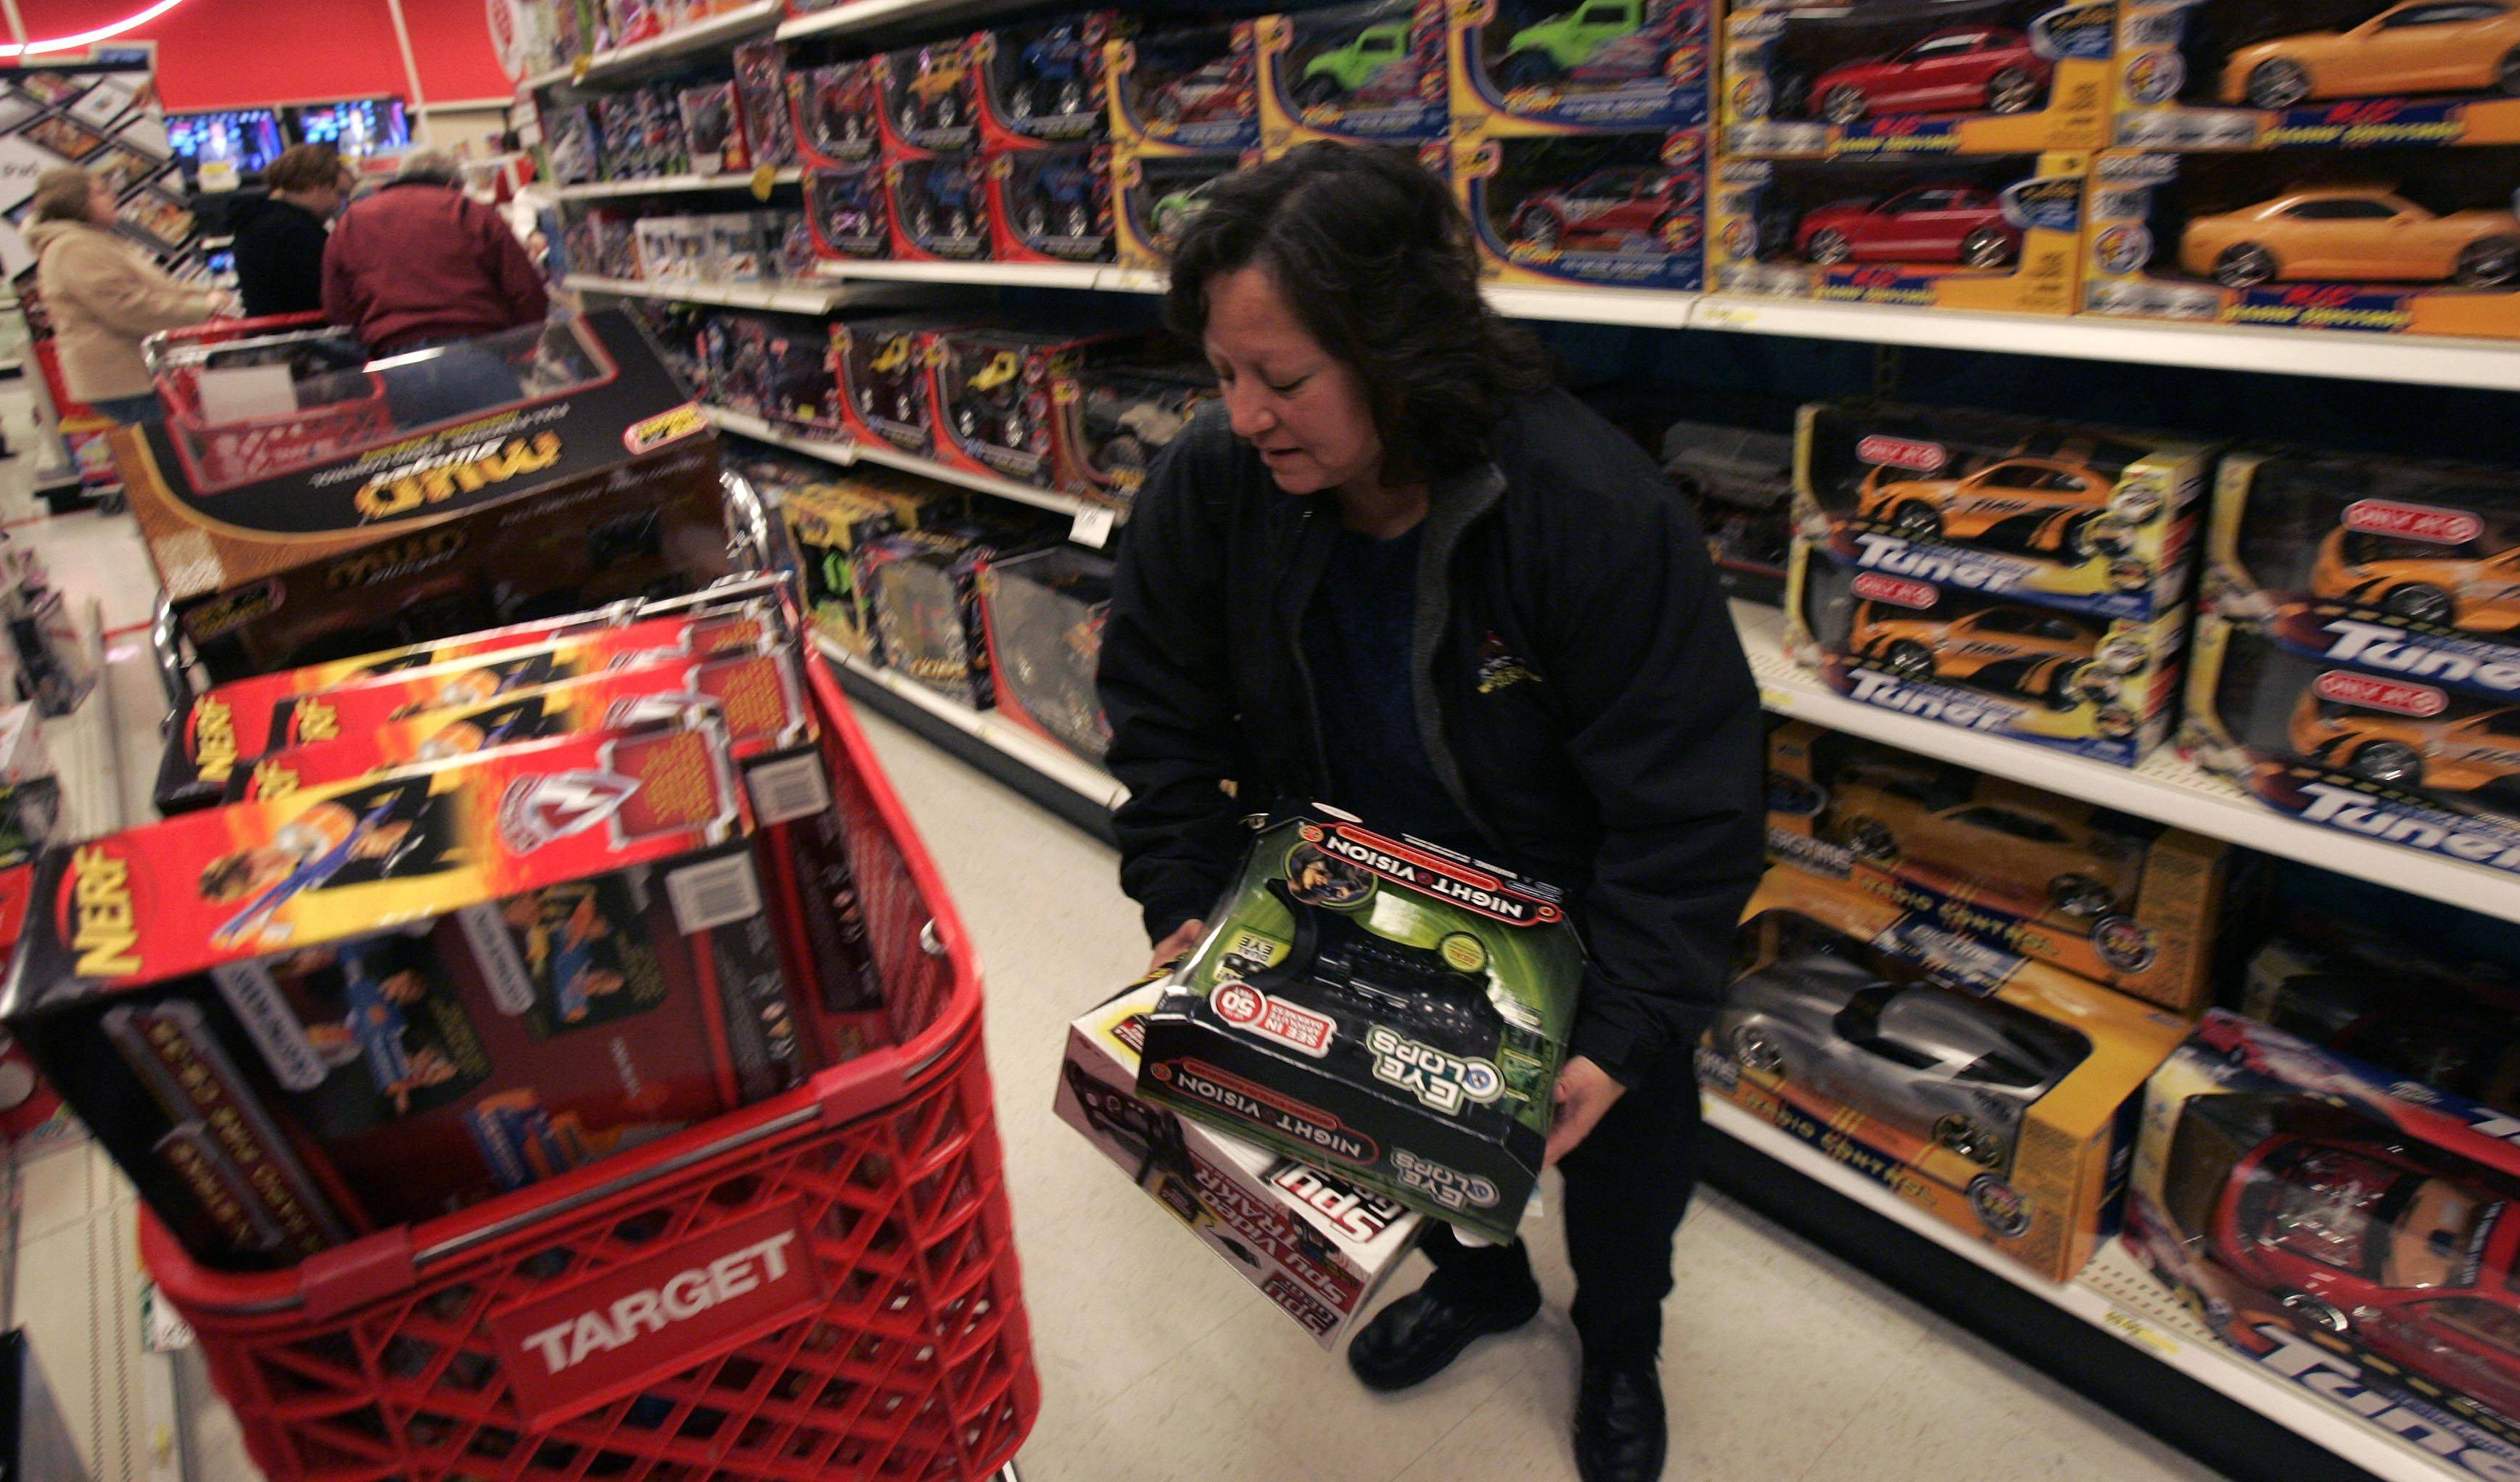 Lori Anne Pettey of Wayne fills up her cart with gifts at Target in South Elgin during Friday.